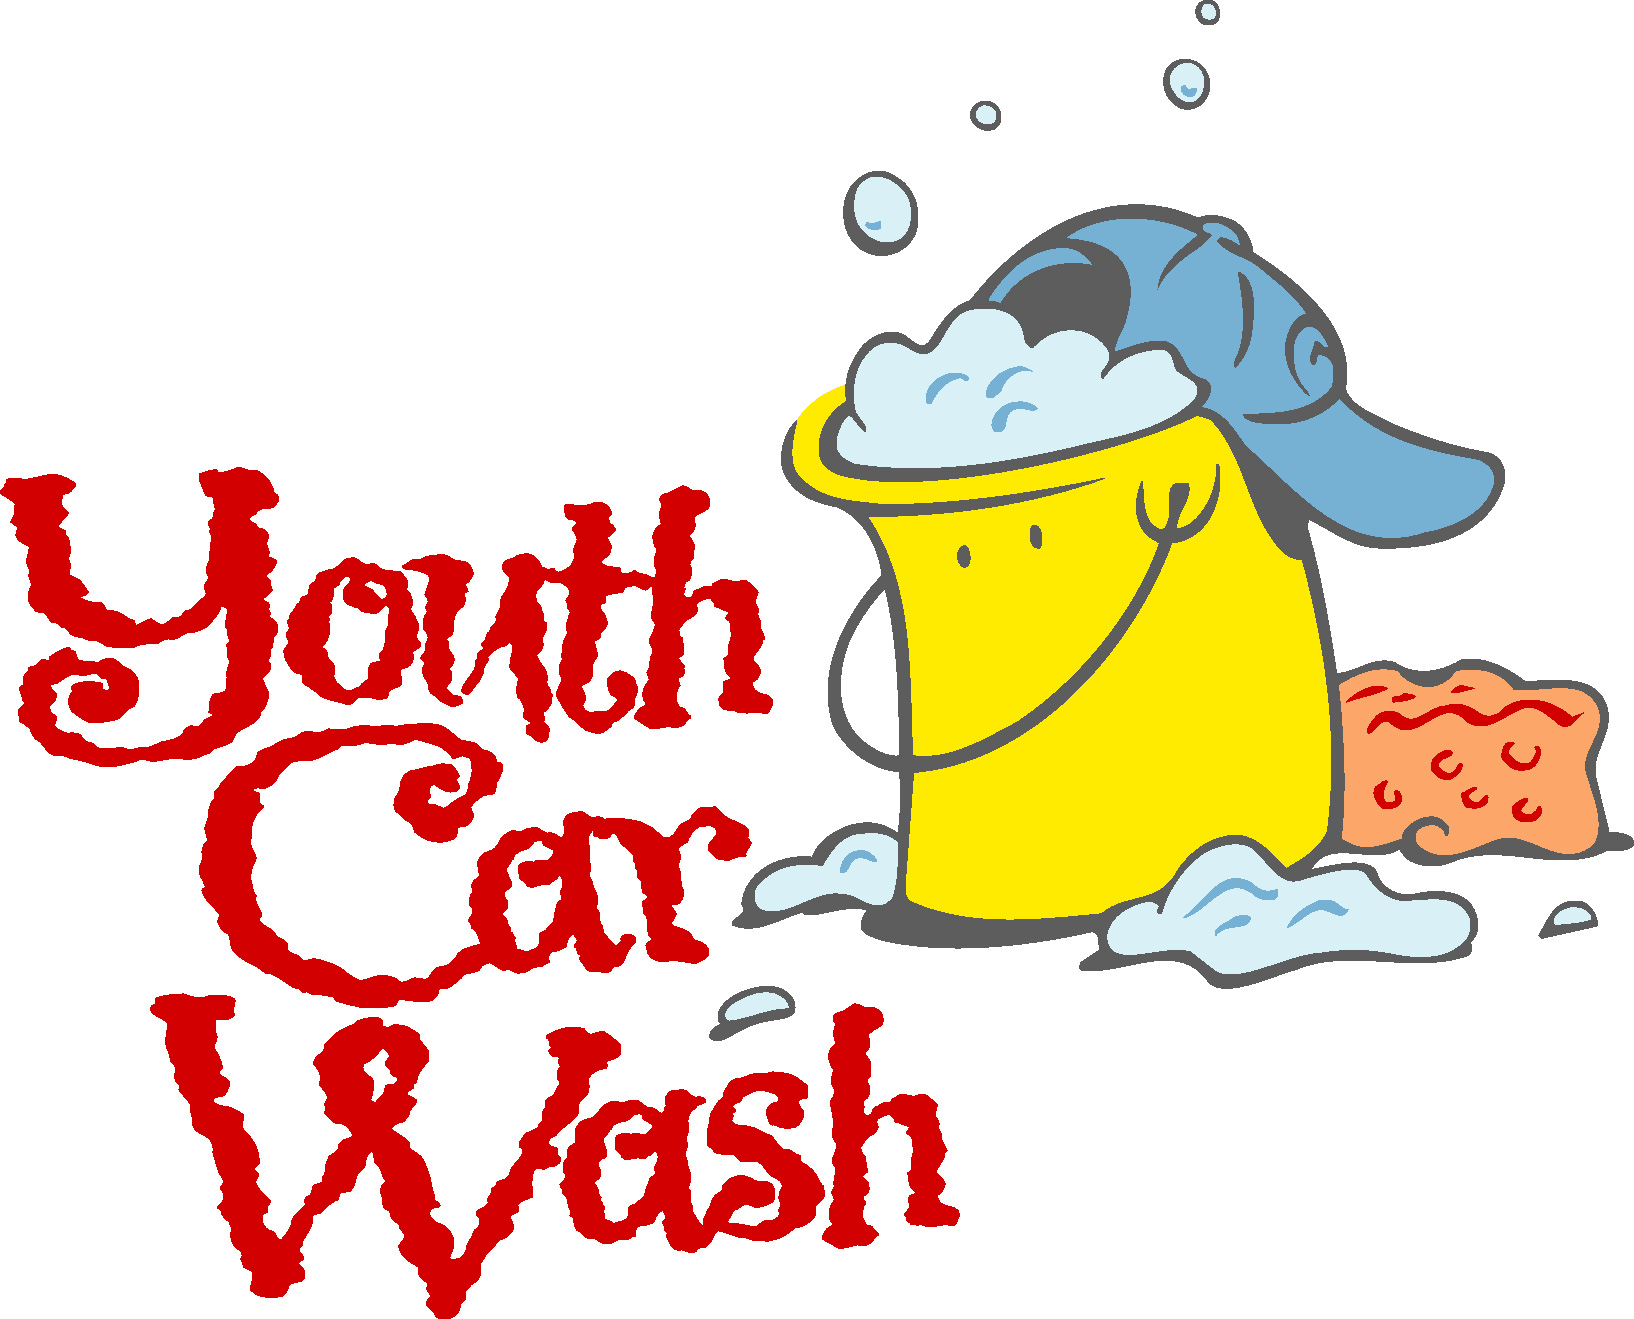 free car wash clip art pictures - photo #10